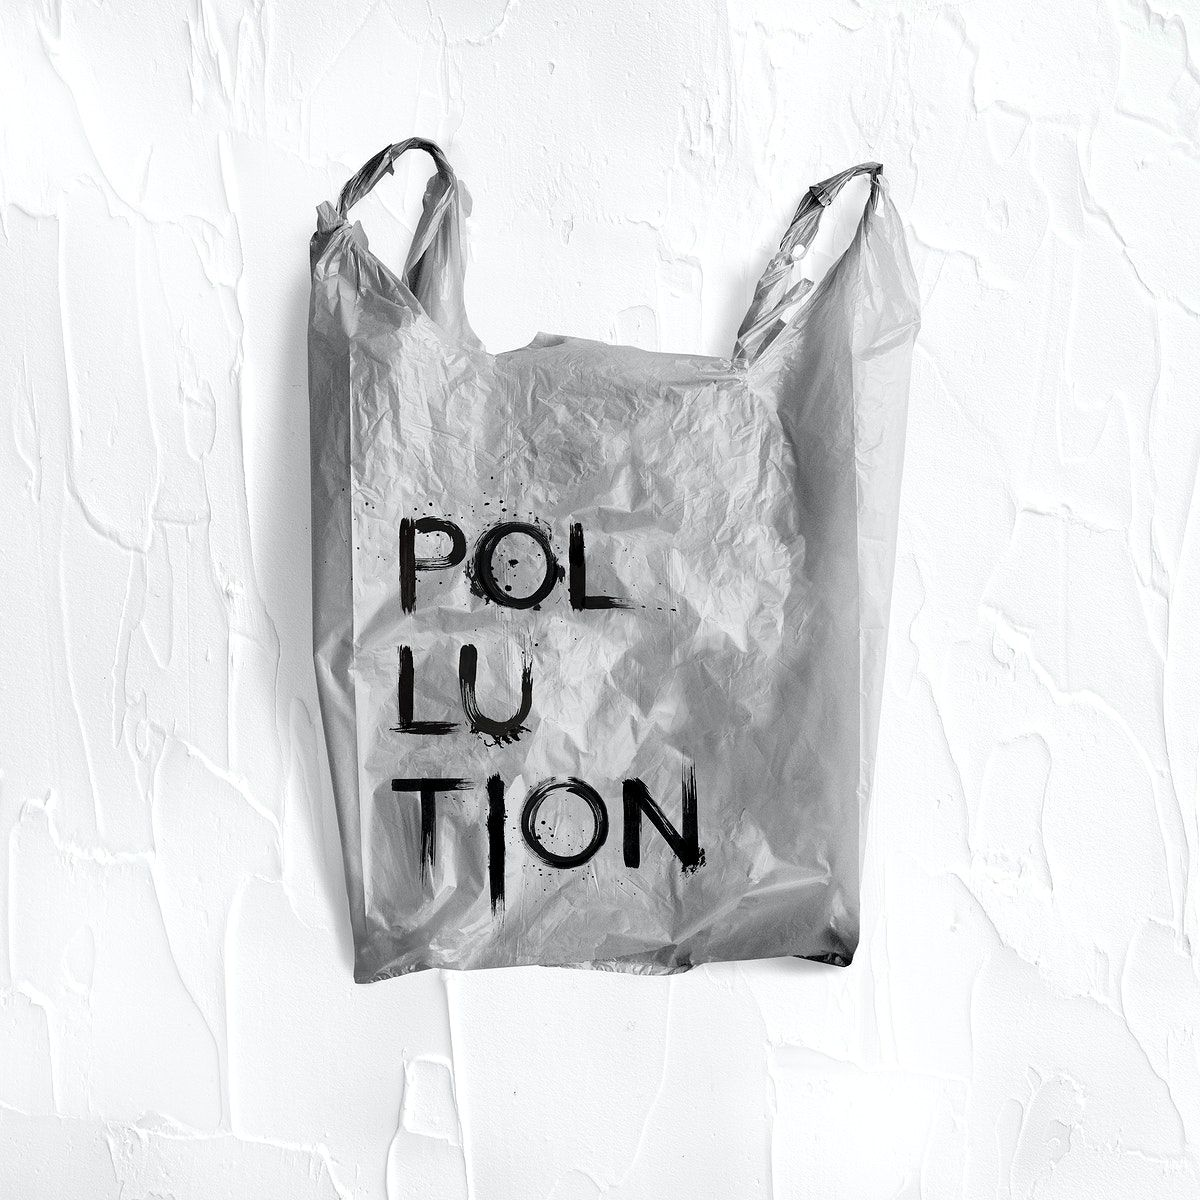 Download Download Premium Psd Of Pollution Word Written On A Gray Plastic Bag Bag Illustration Bag Mockup Paper Bag Design